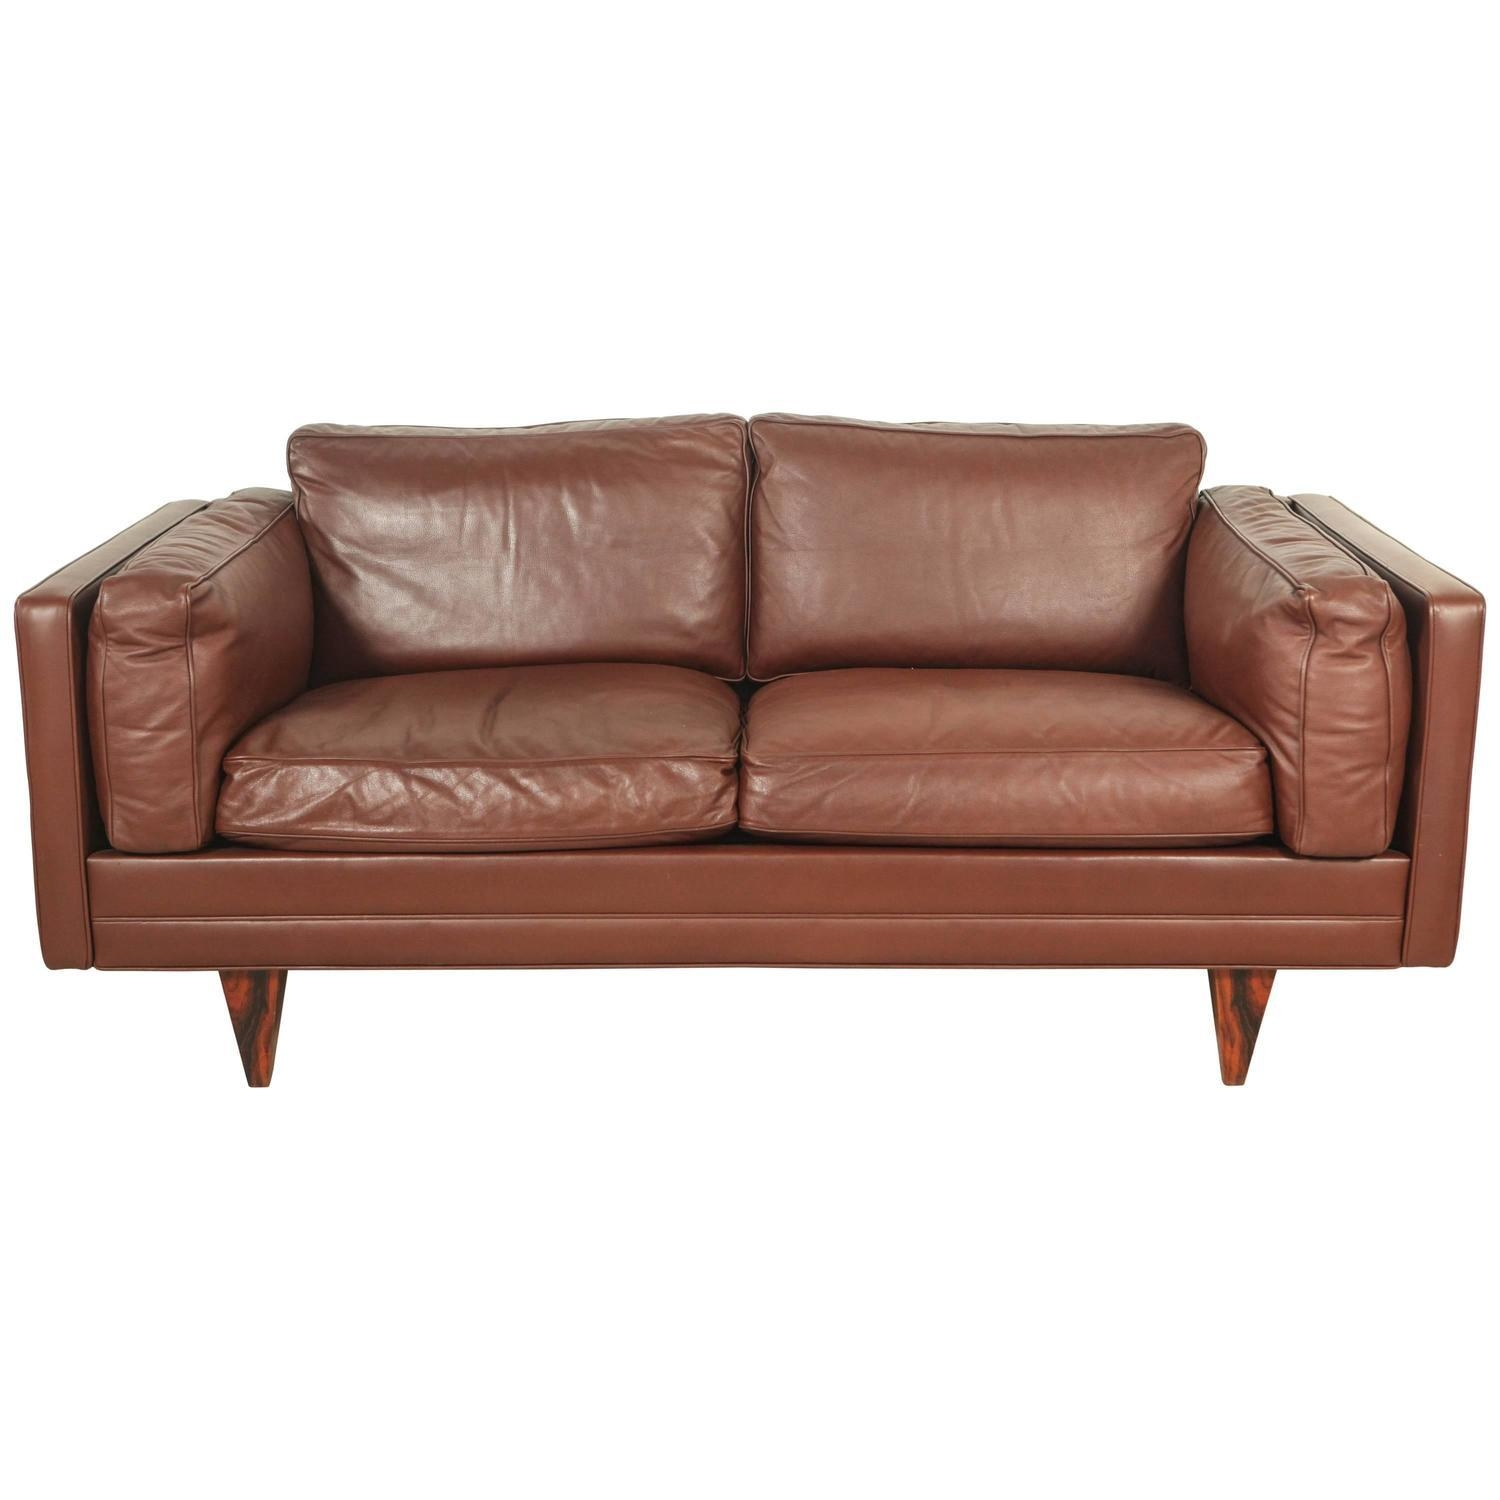 Illum Wikkelsø Style Two Seater Sofa For Sale At 1Stdibs With Two Seater Sofas (Image 10 of 20)